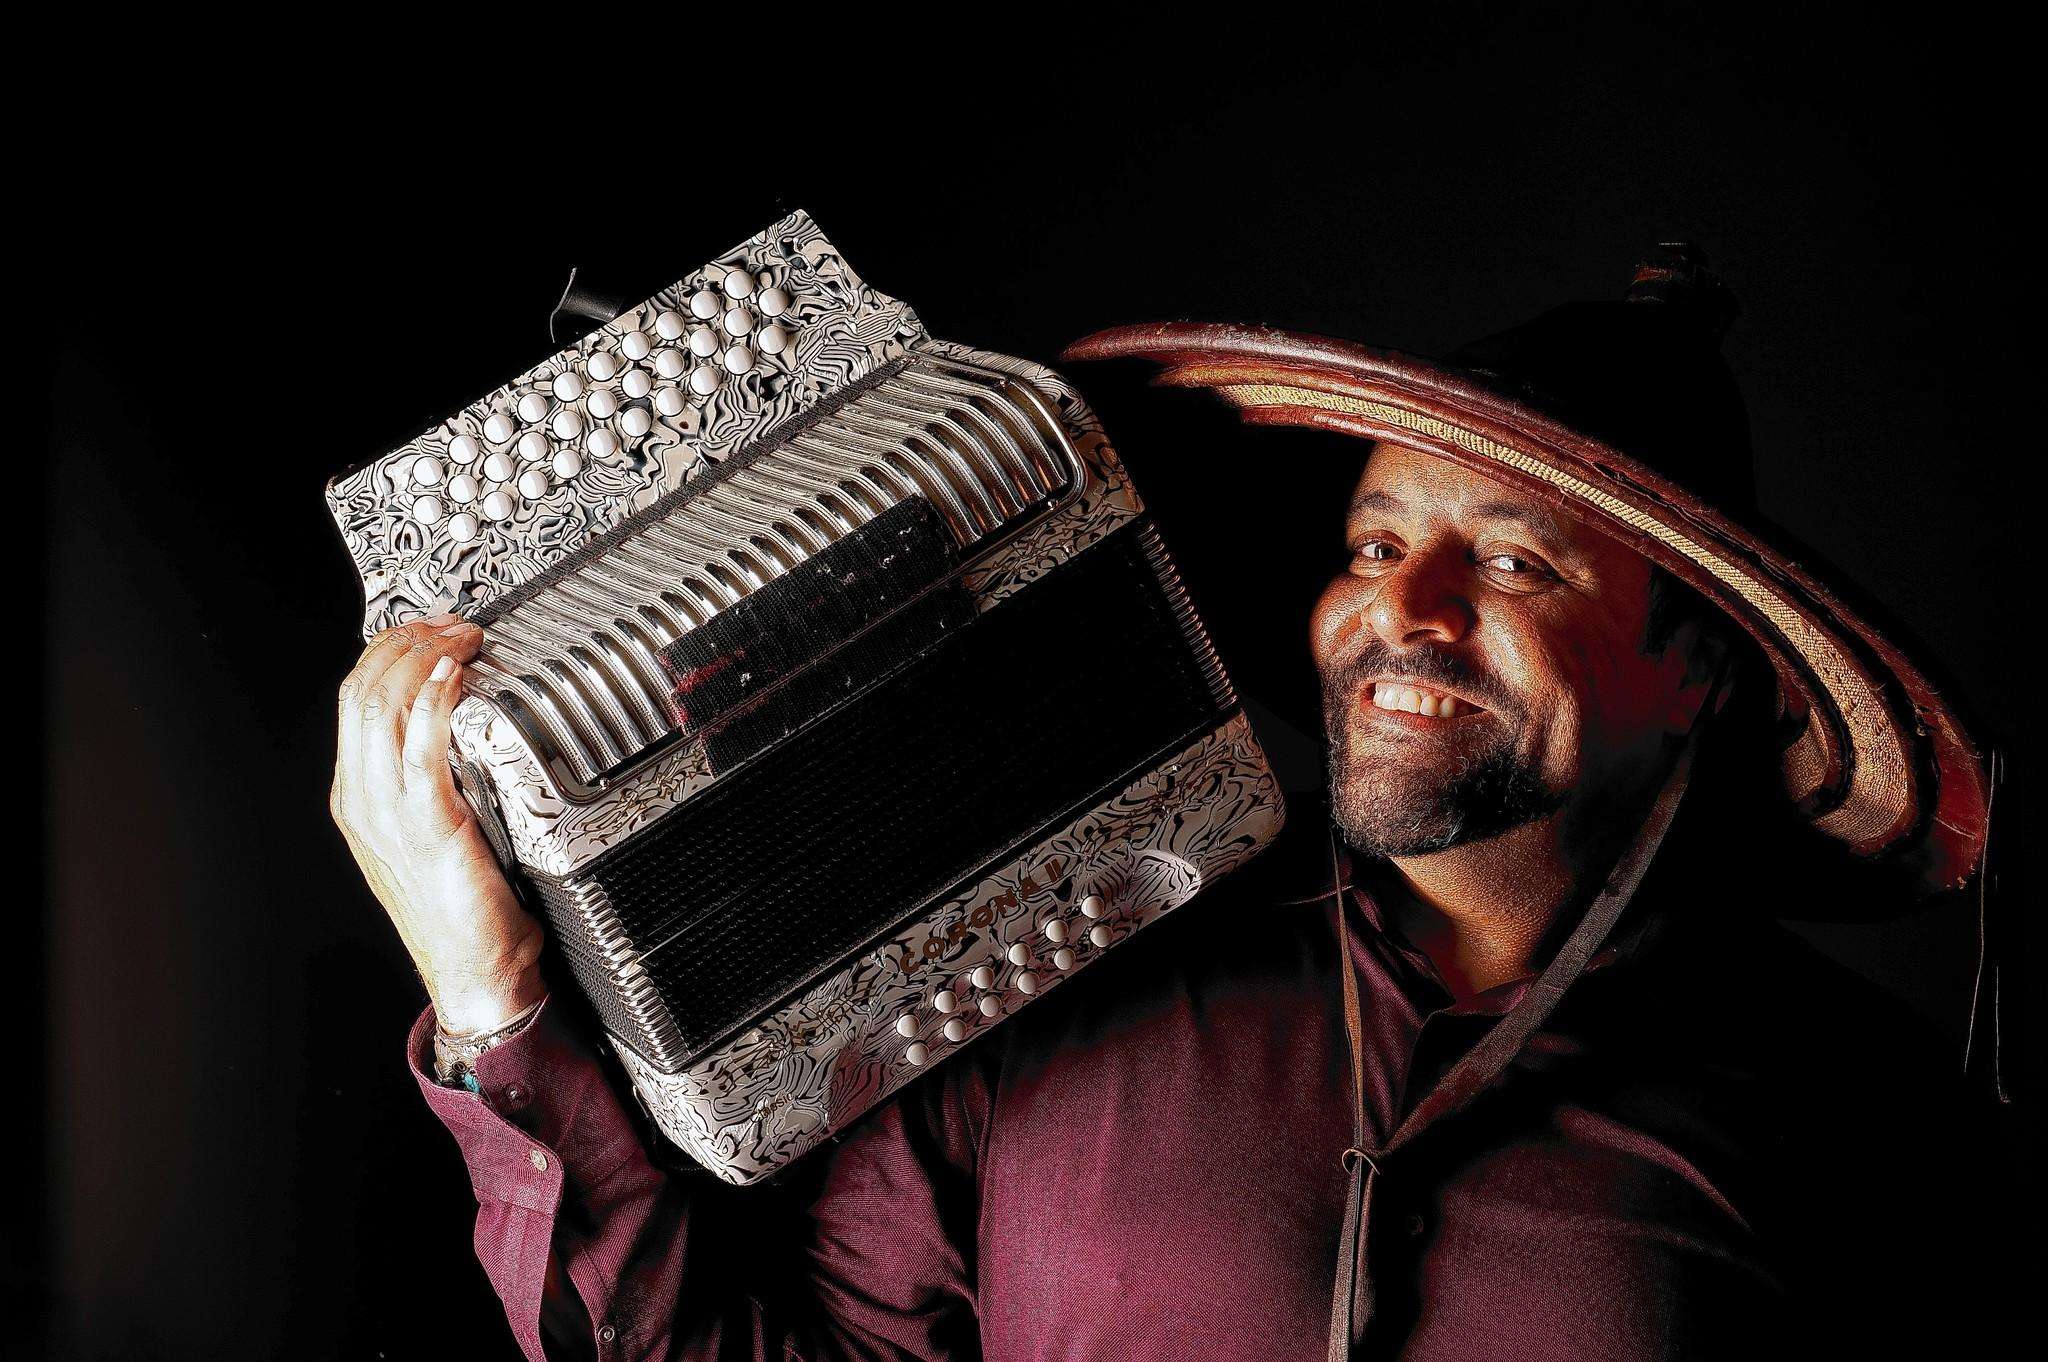 Zydeco musician Terrance Simien will provide the jams at a pre-Mardi Gras party coming to The Corner Pocket in Williamsburg.